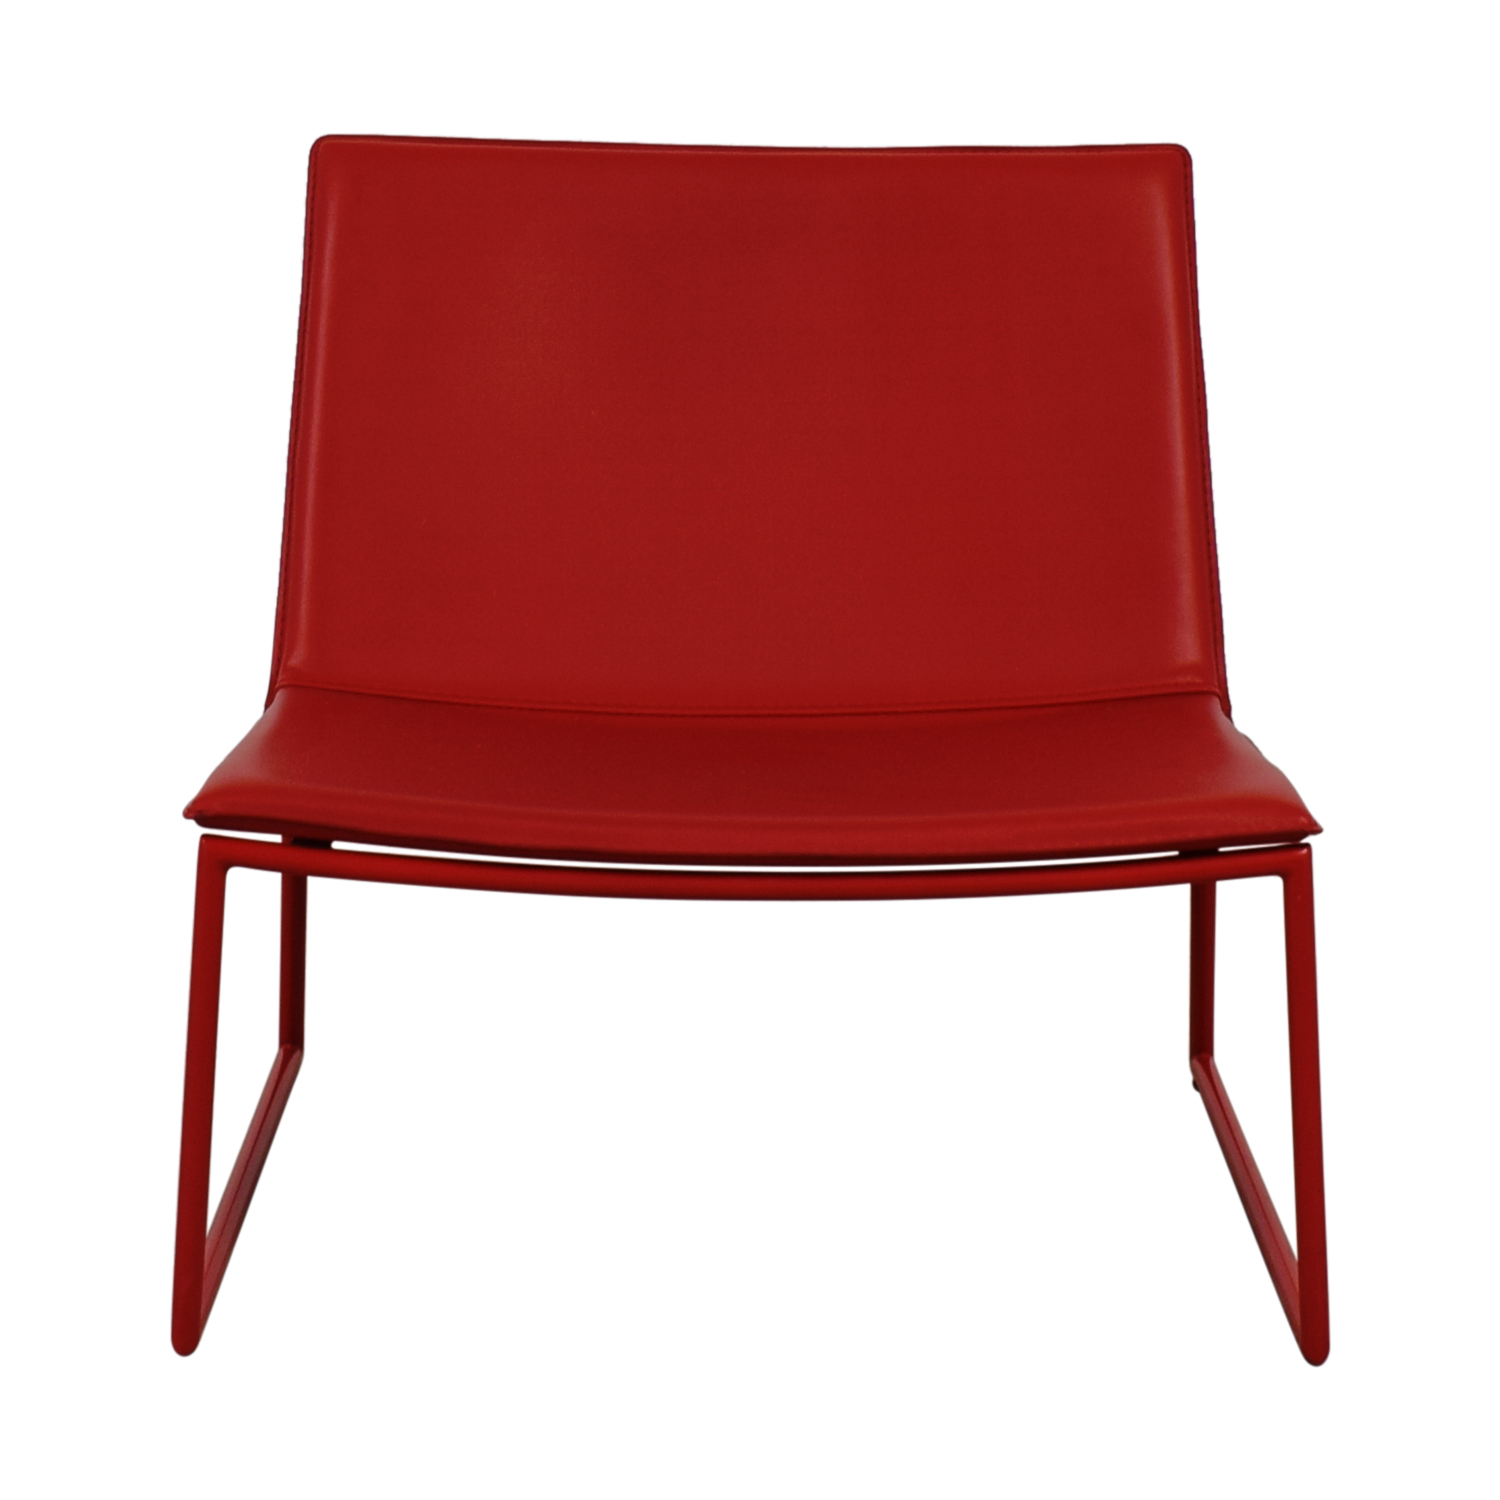 CB2 CB2 Triumph Lounge Chair nyc